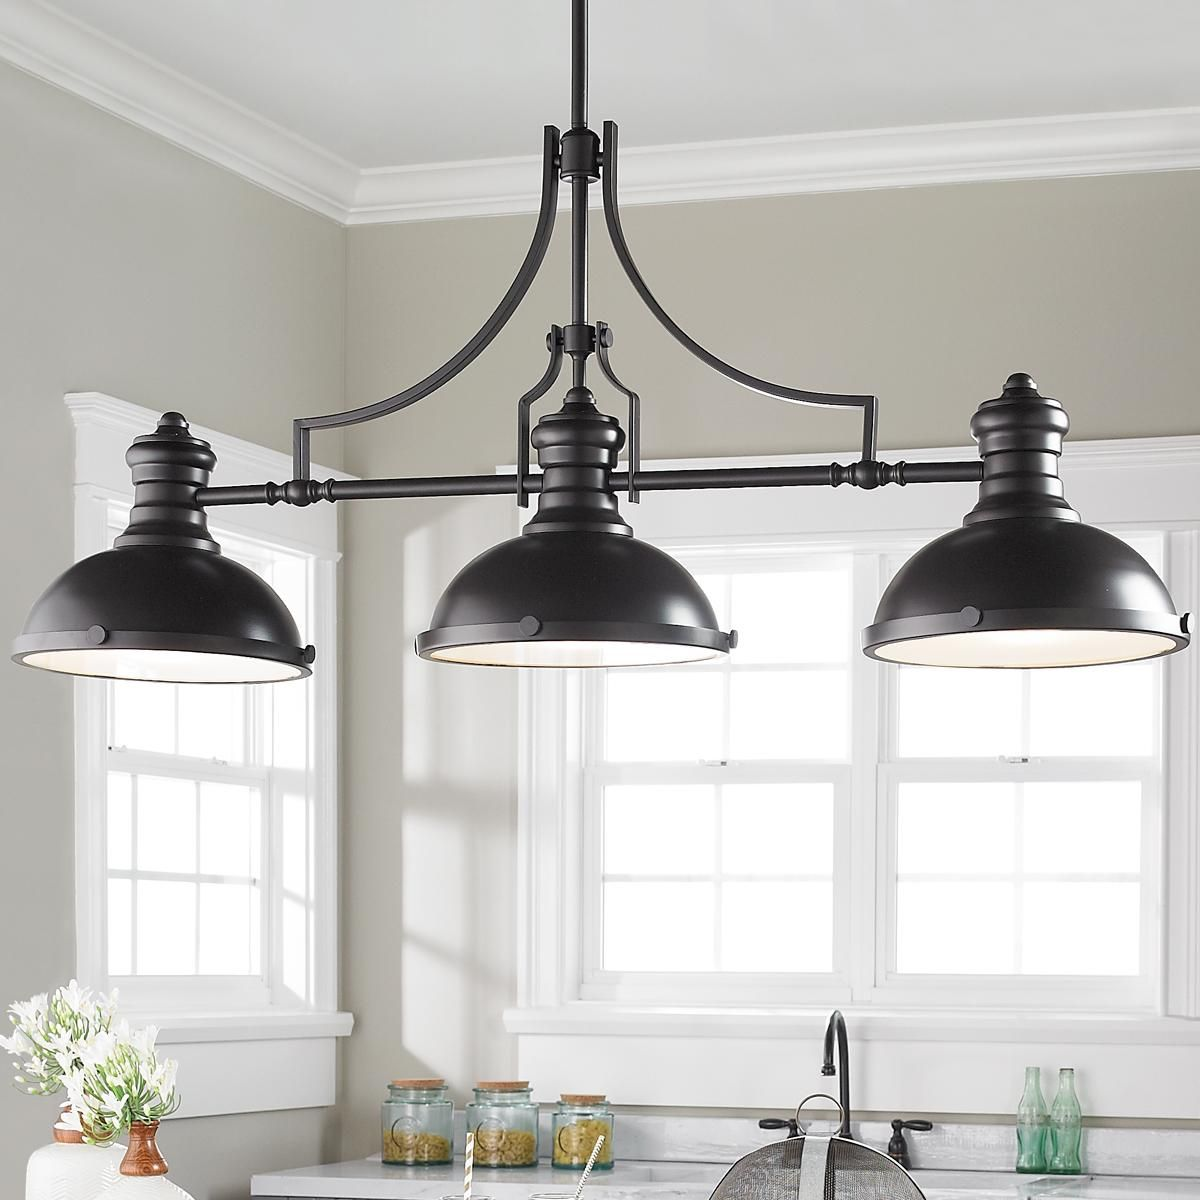 Period Pendant Island Chandelier  3 Light  Chandeliers Pendants Fair Chandelier Kitchen Design Ideas